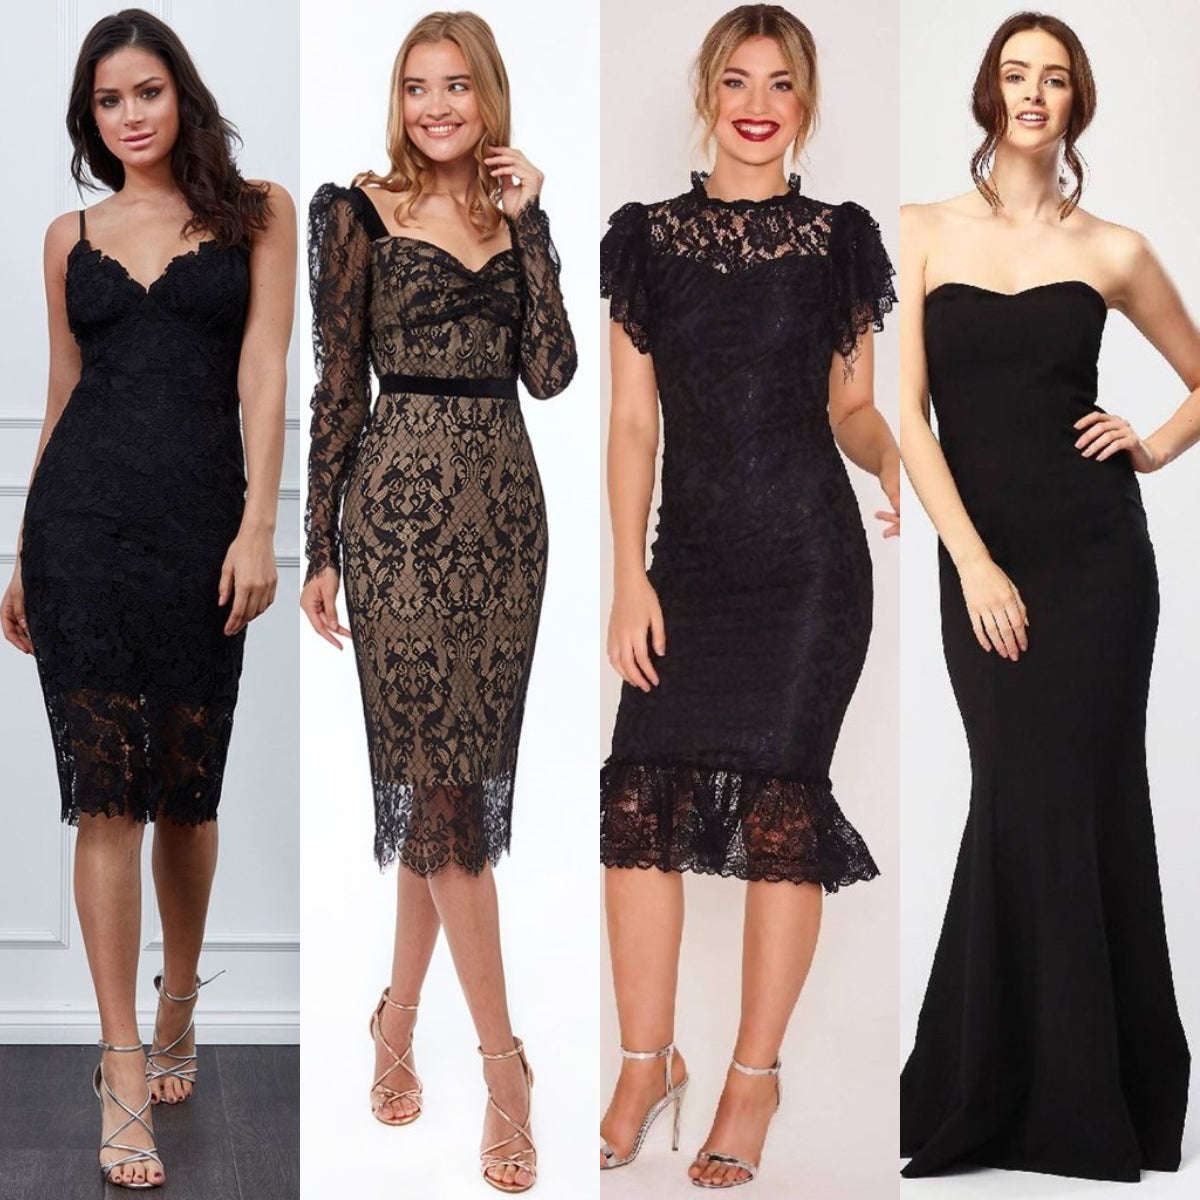 Black Dresses Date Night Outfit Ideas